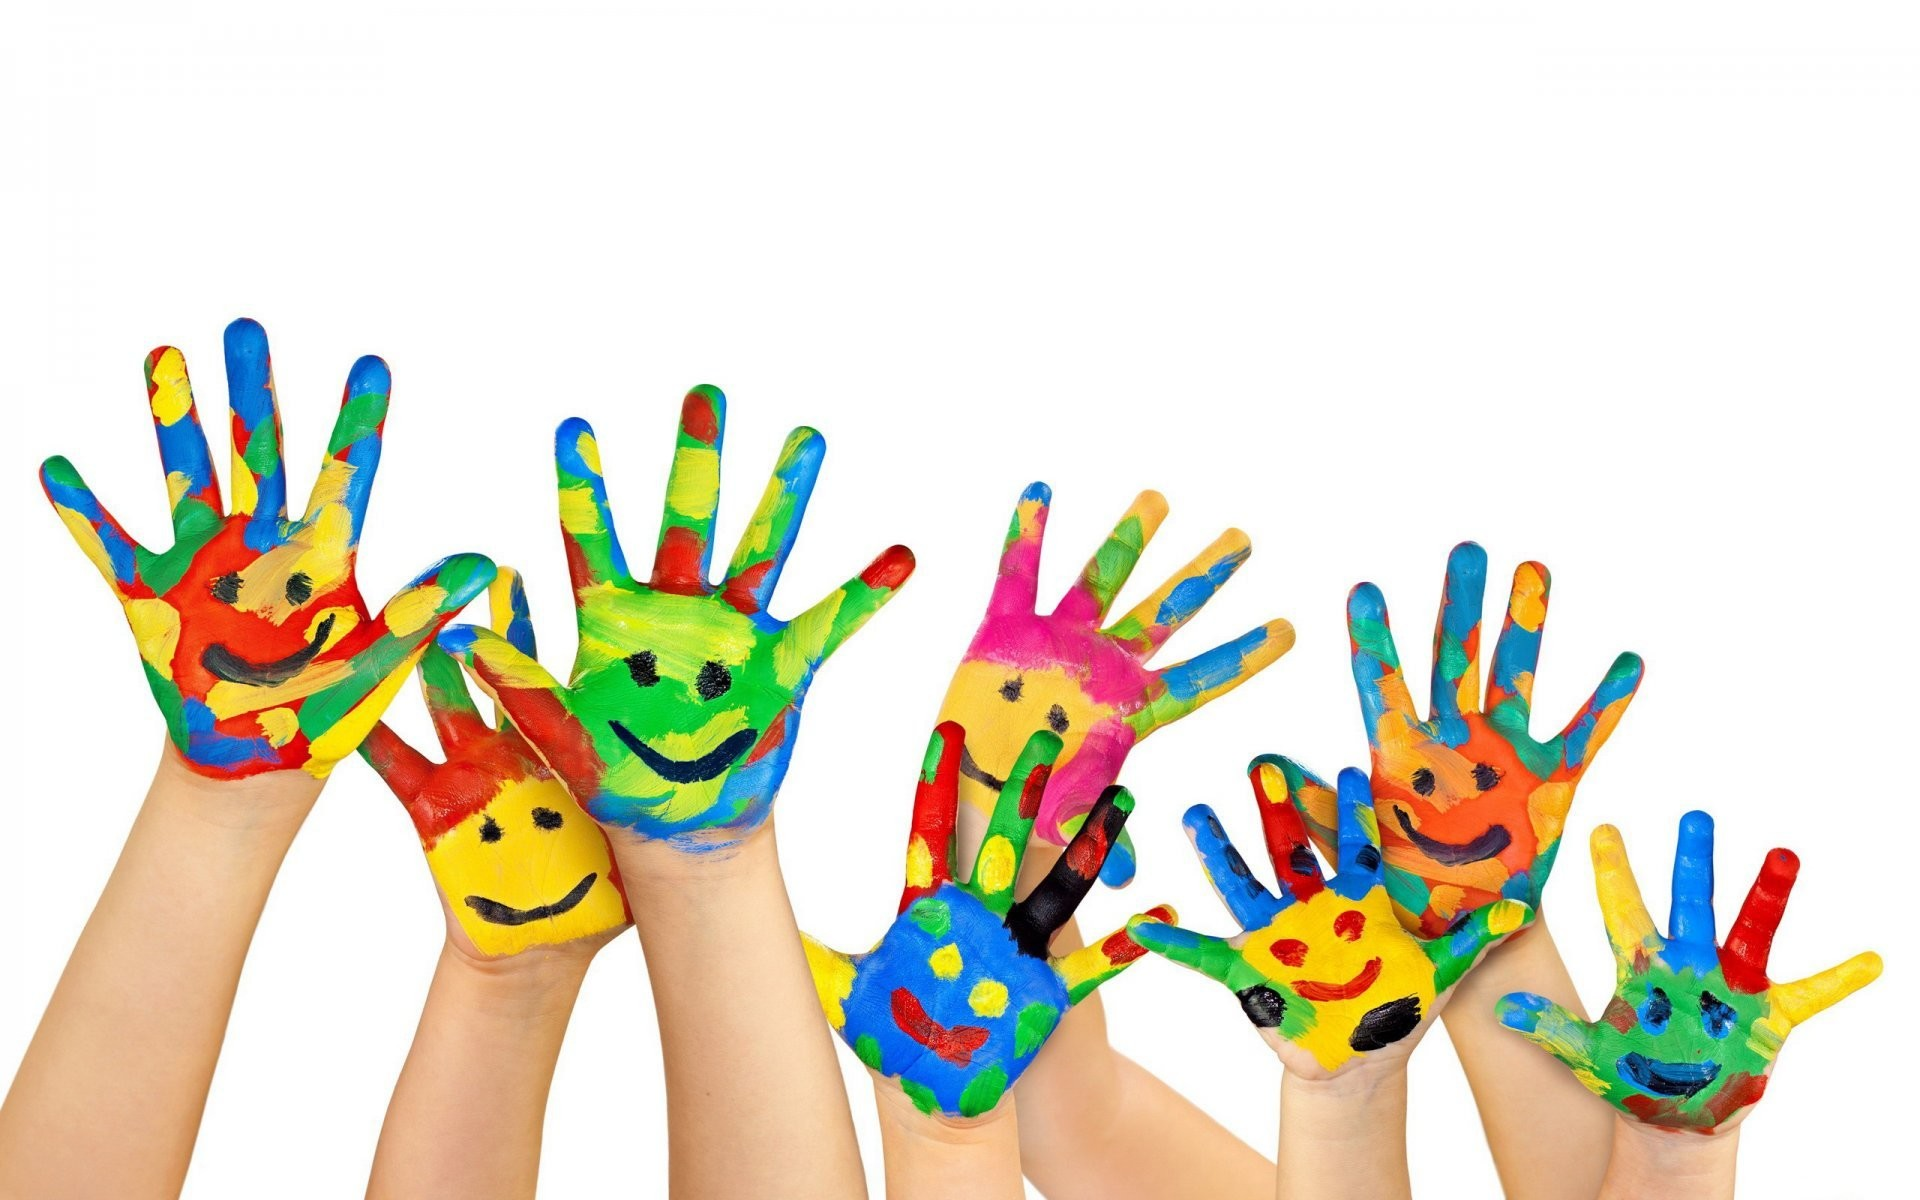 1920x1200 white background hands palm fingers paint flowers smile children childhood